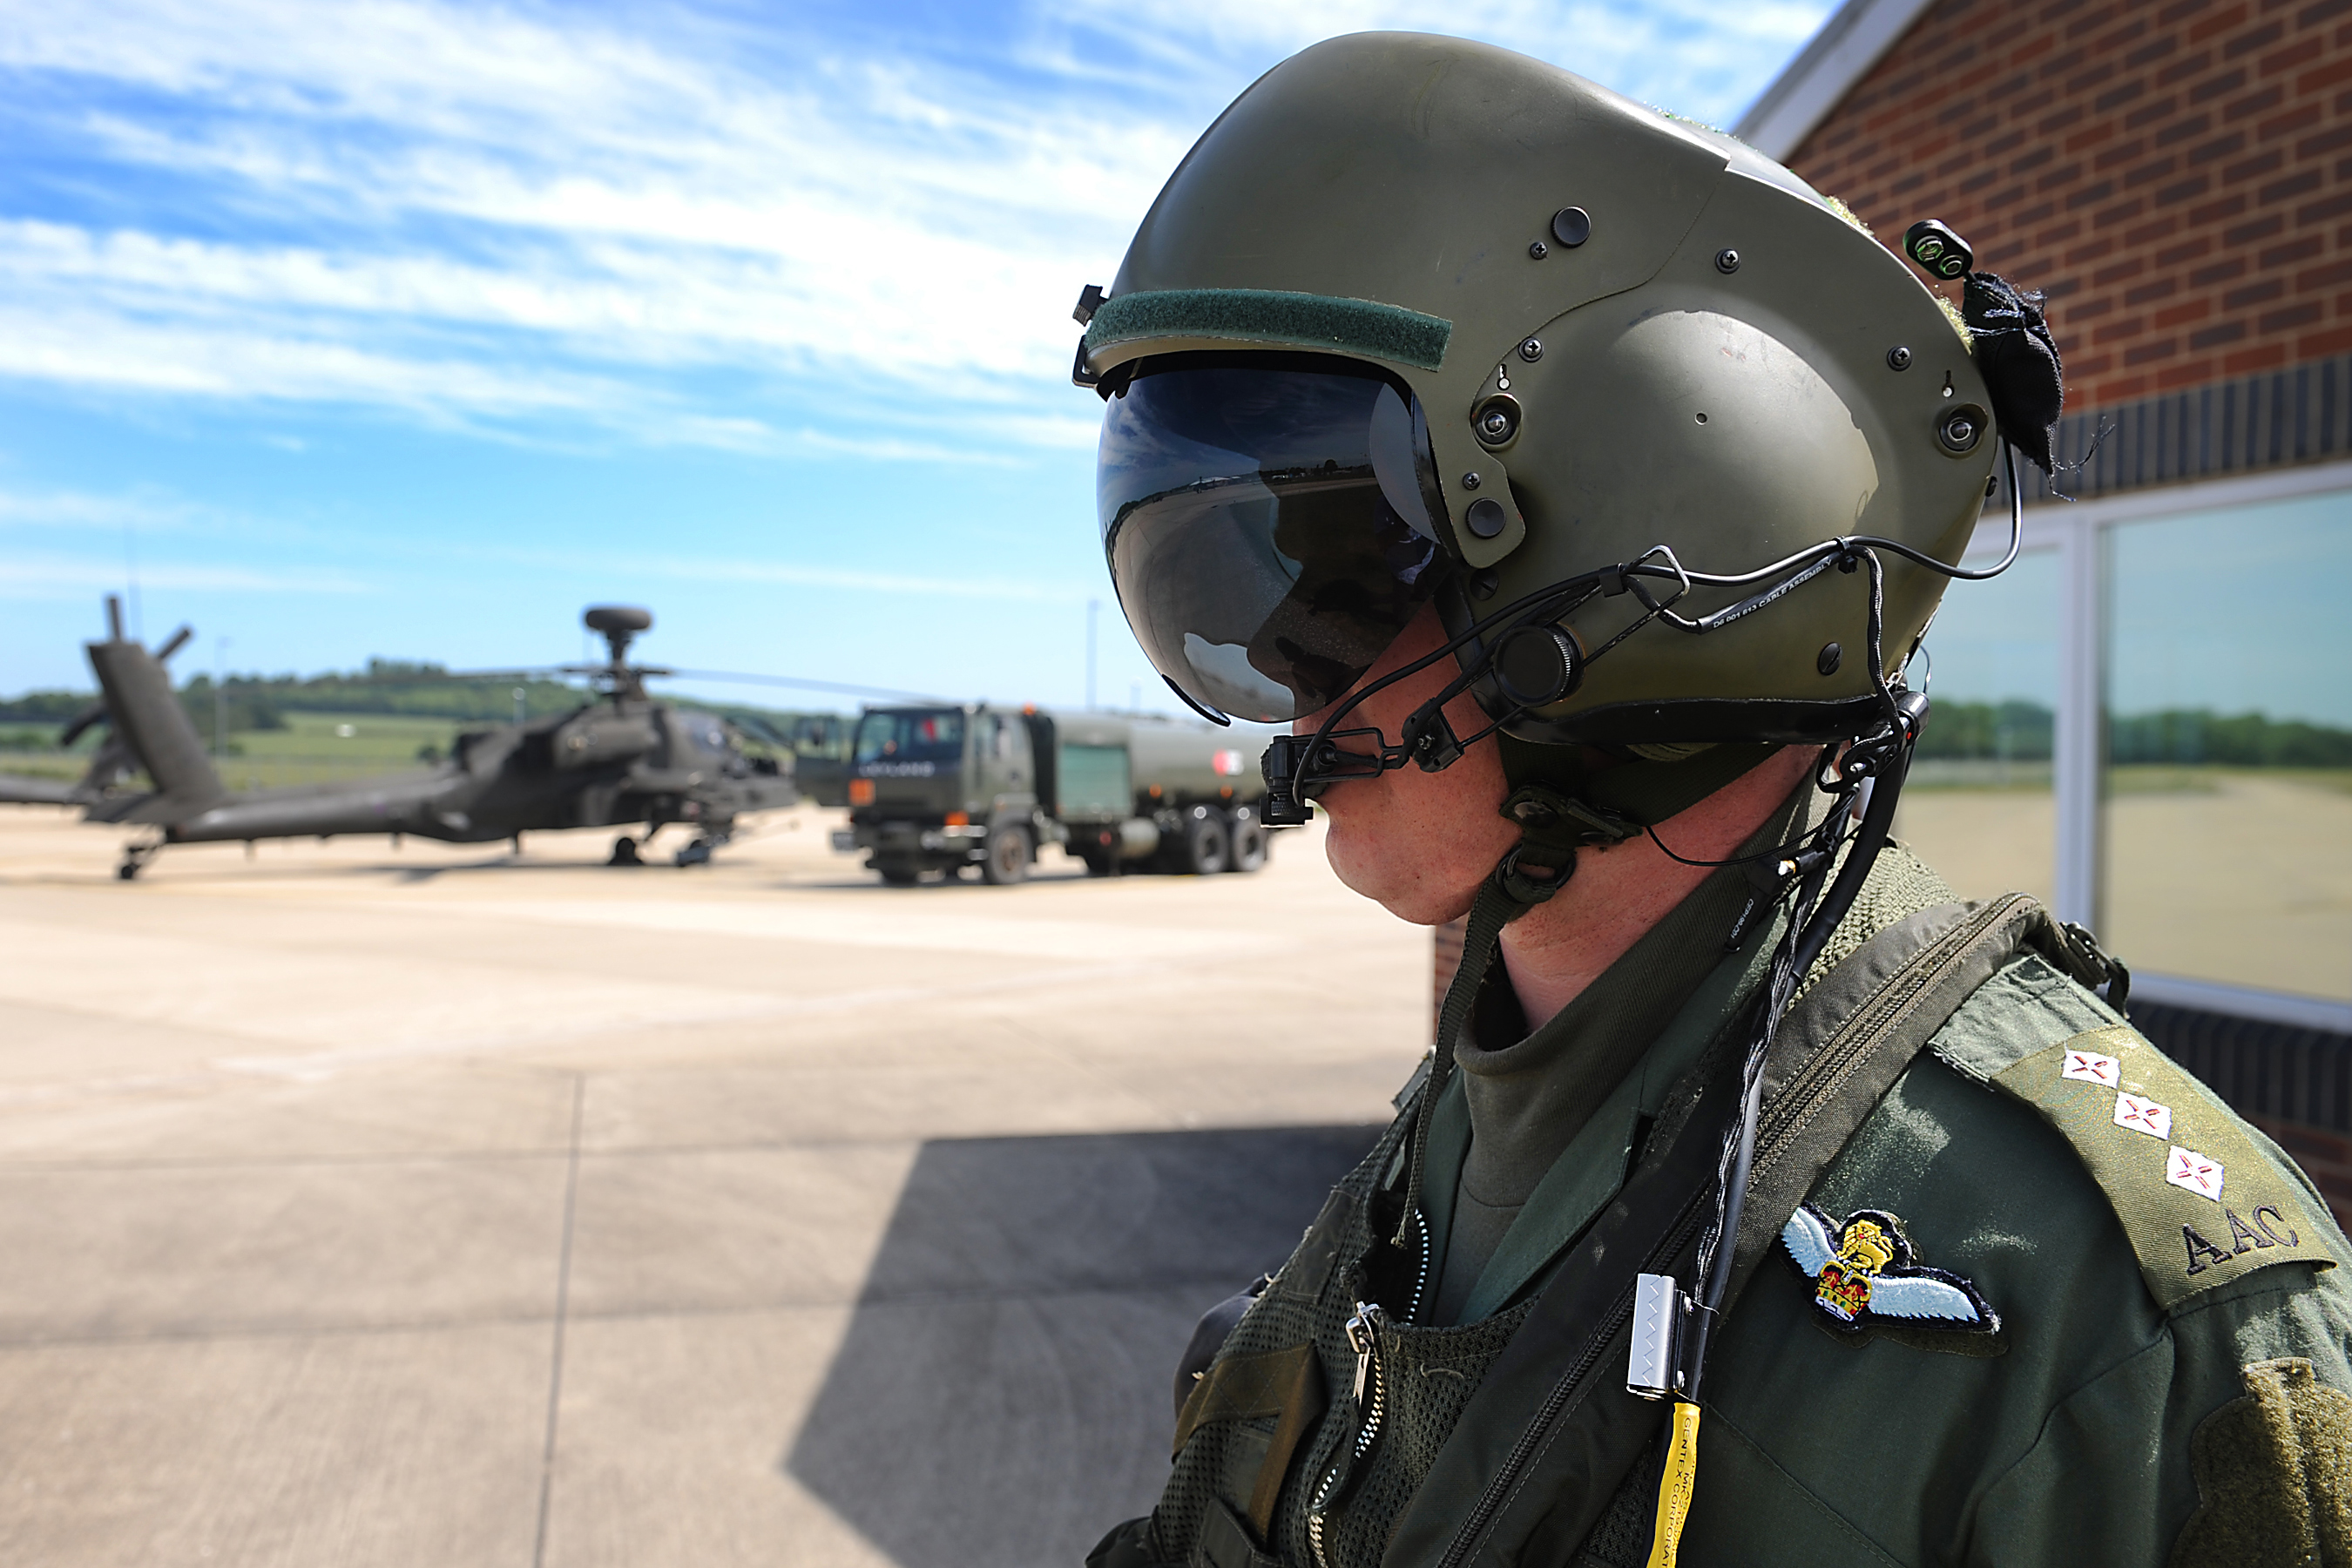 helicopter pilot training uk with File Army Air Corps Pilot Walks To His Apache Helicopter Mod 45152779 on 4604399208 additionally Twitter Wel es Home Hero Prince Harry But Critics Divided Over Killing Admission 3361359 likewise Majority Dont Trust Female Pilots furthermore Watch further Piper Pa 28 Warrior Aircraft Cockpit Poster P4219.